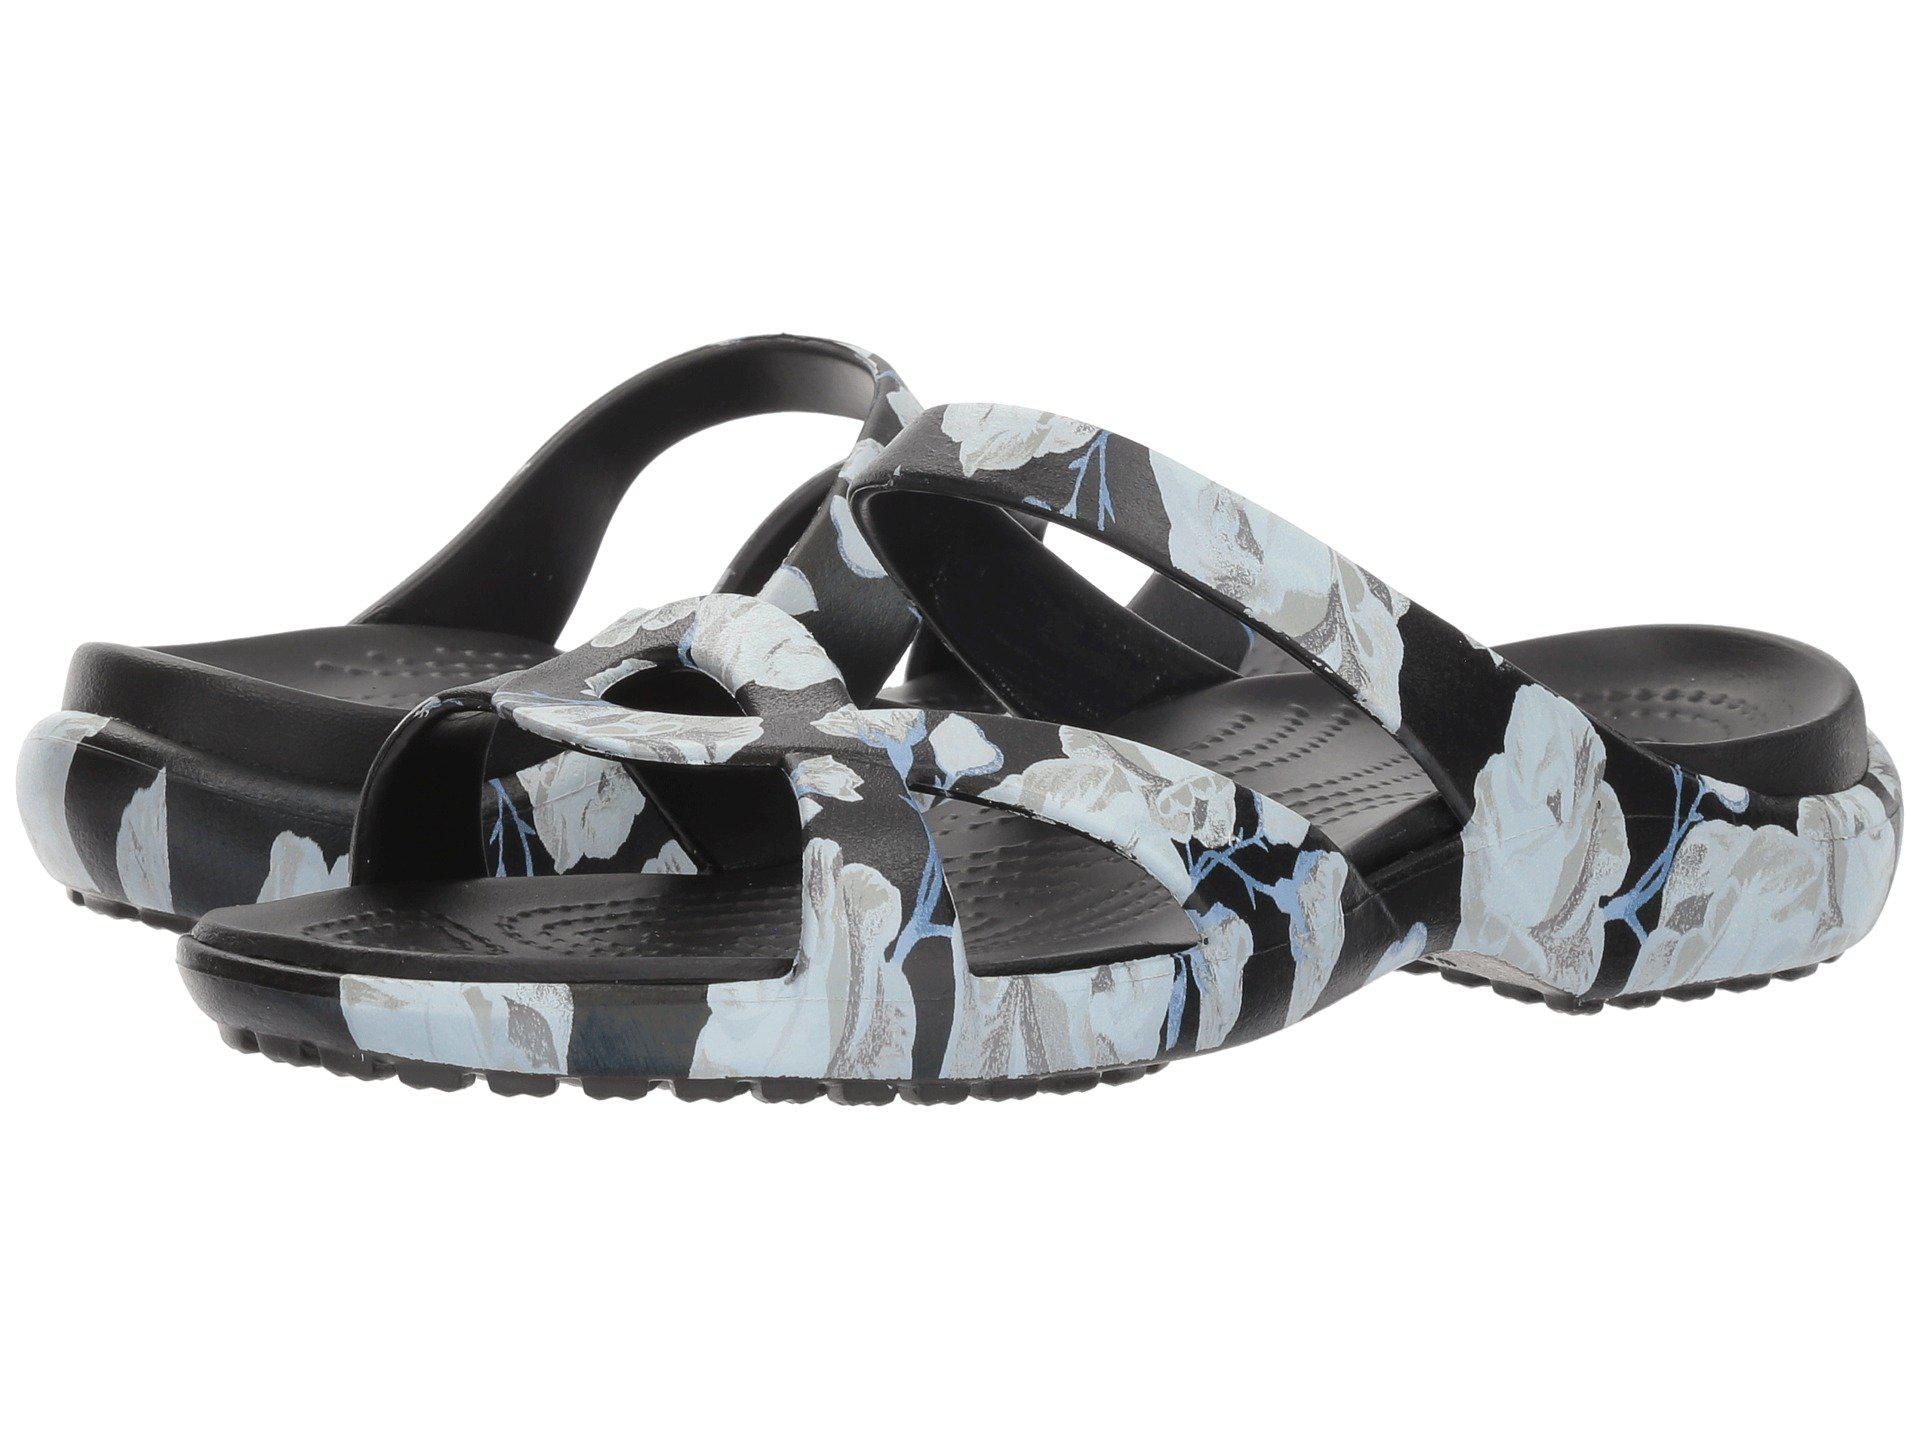 8d707a243 Lyst - Crocs™ Meleen Twist Graphic Sandal in Black - Save 31%